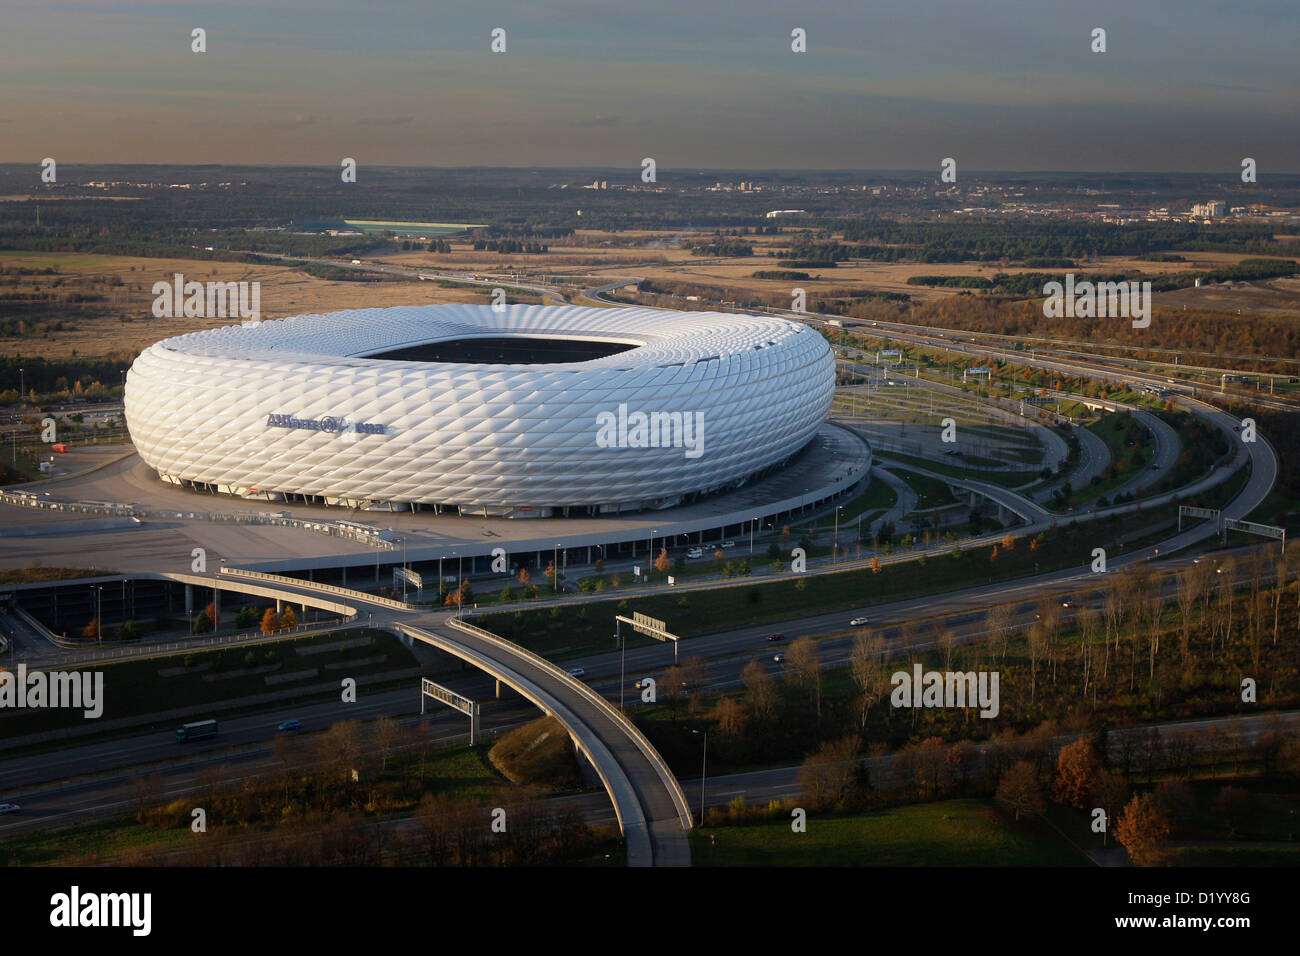 Allianz Arena soccer stadium seen from above, Munich, Bavaria, Germany - Stock Image